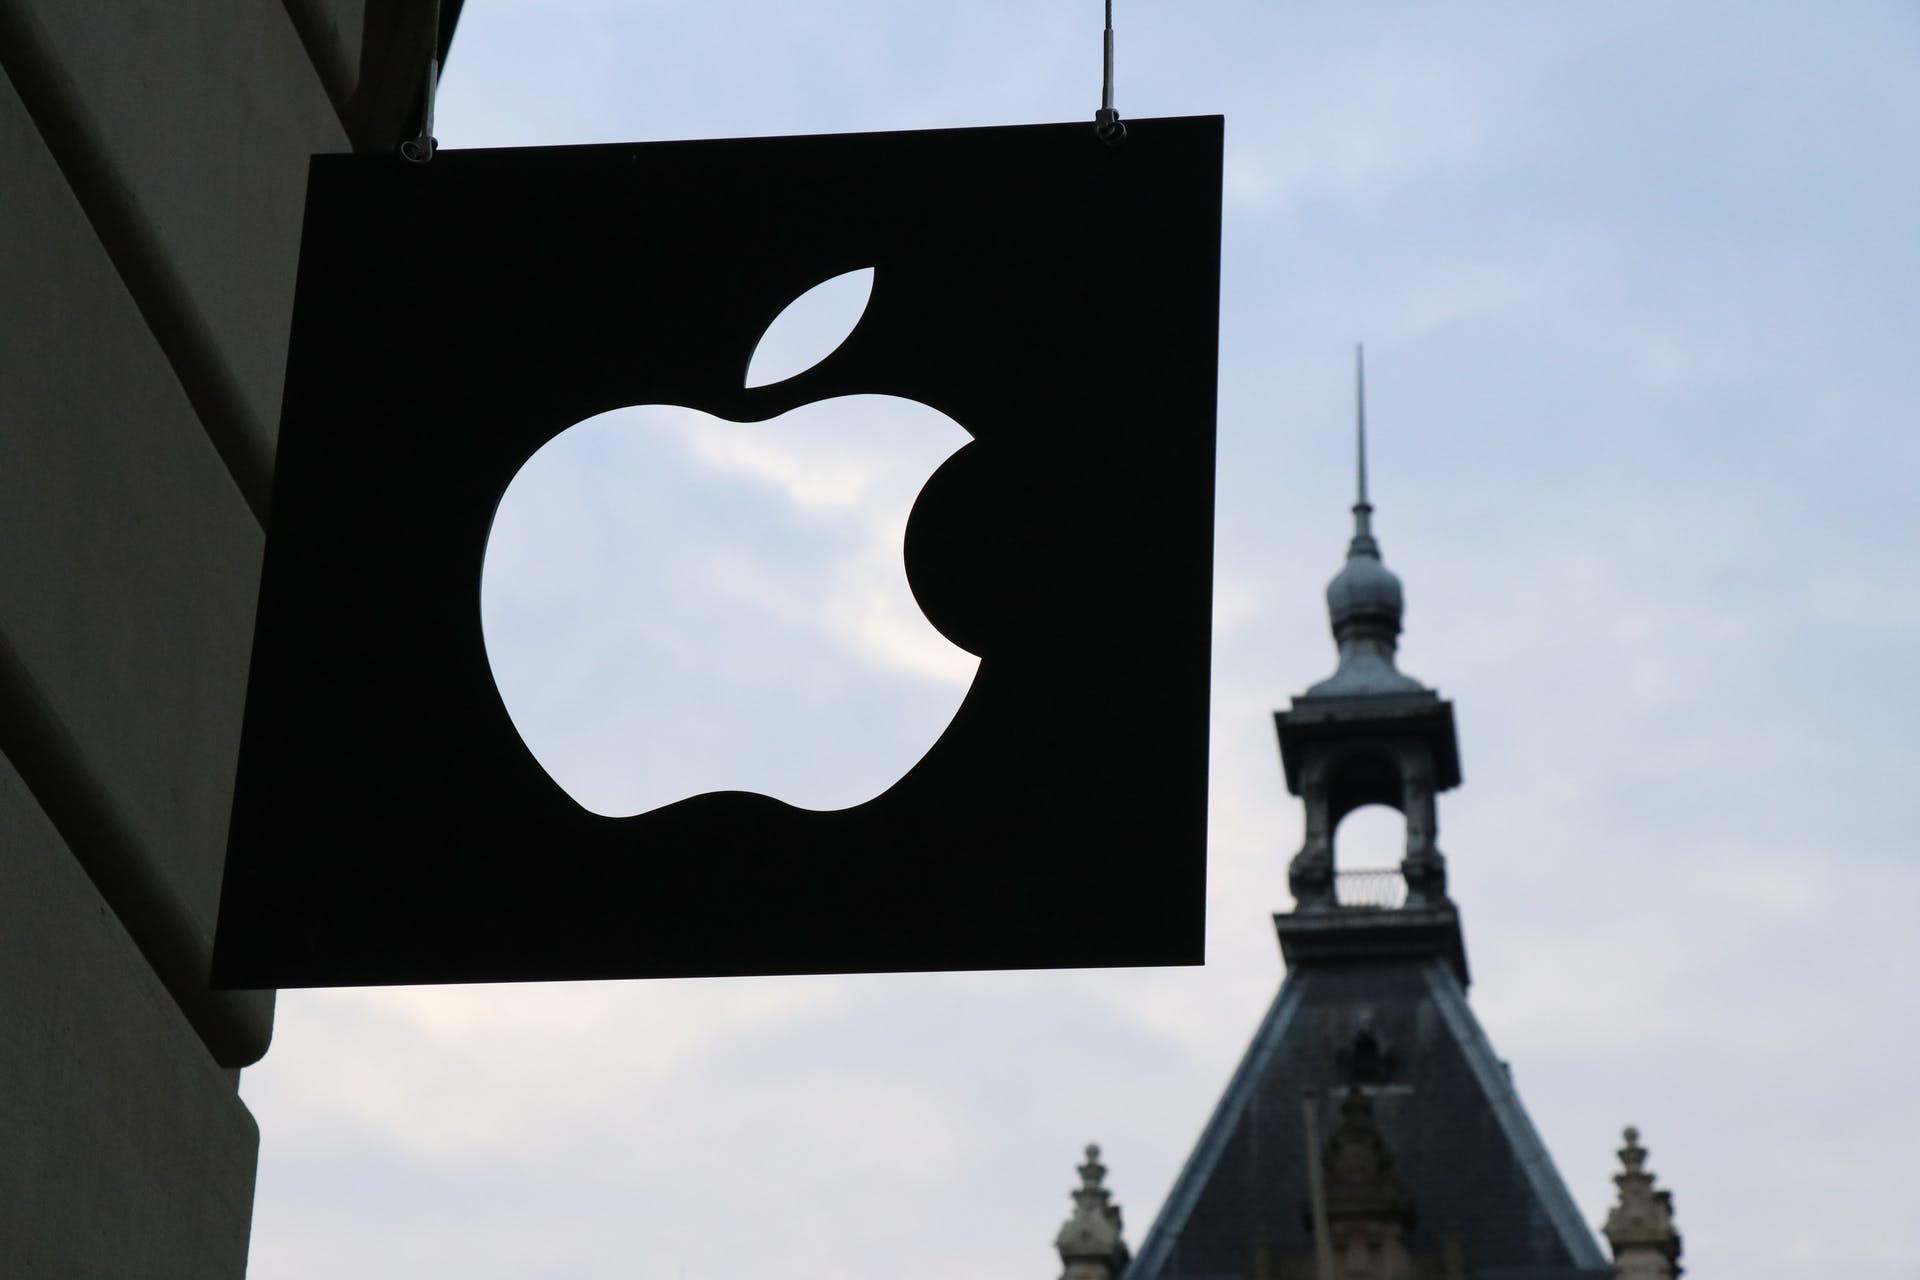 apple icon for marketing trends in 2020